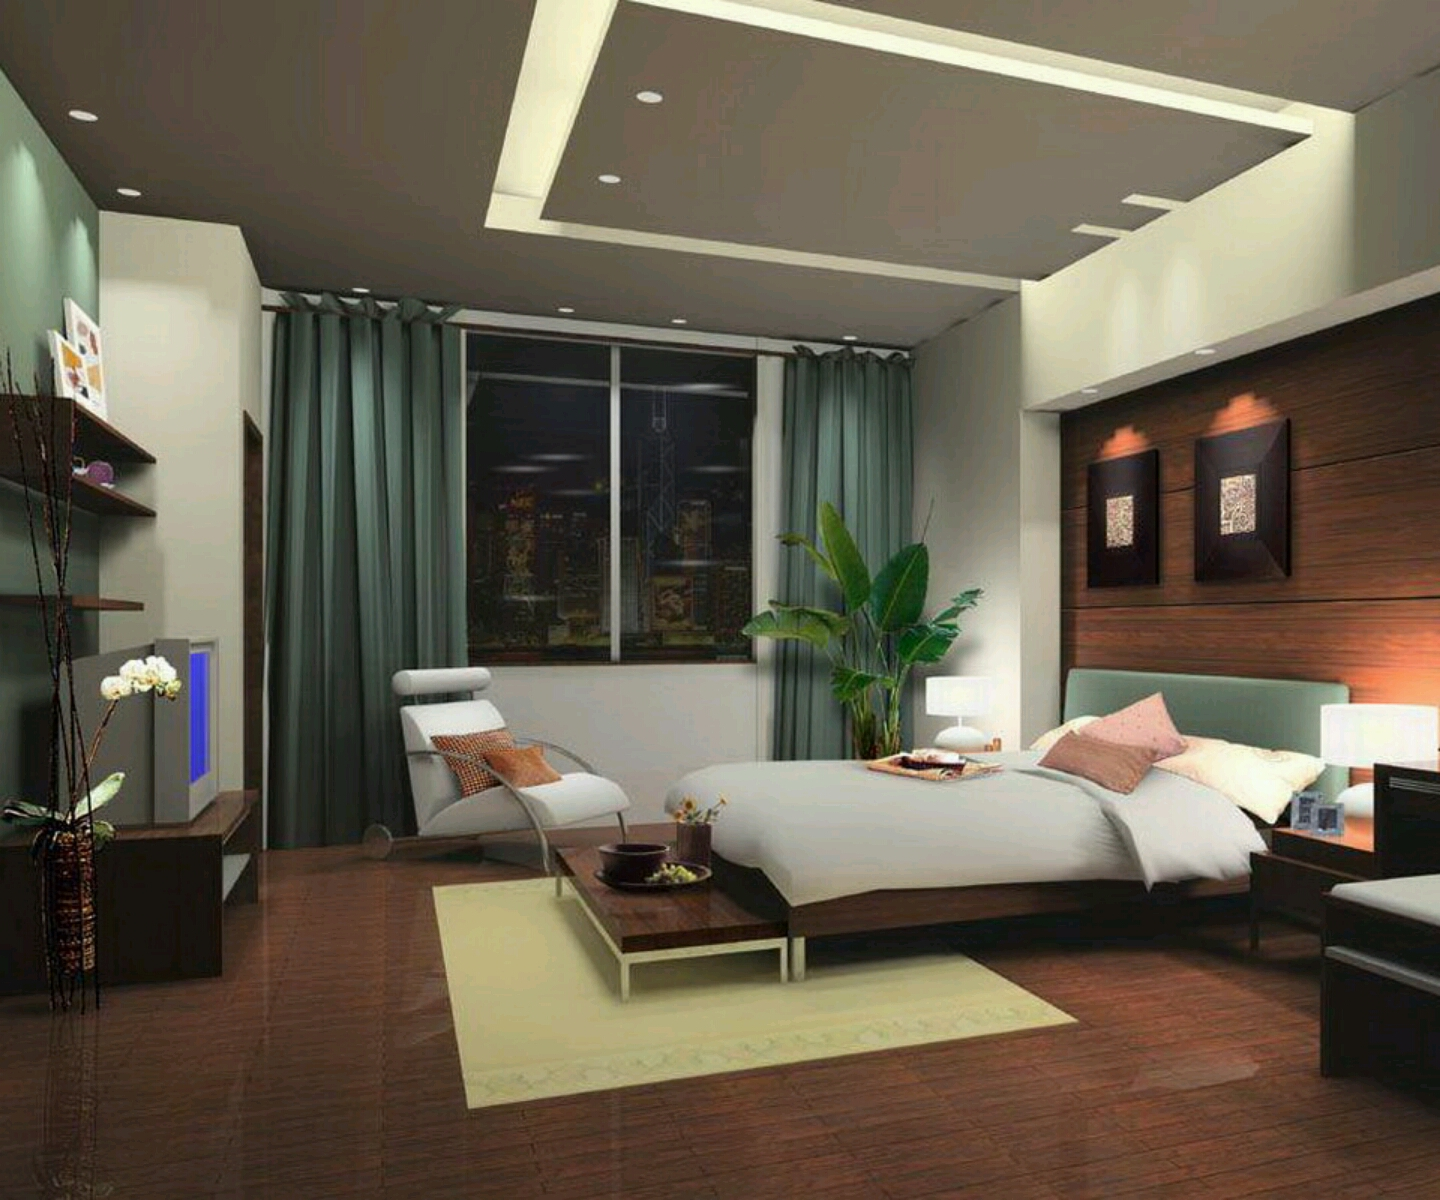 Home Design Ideas: New Home Designs Latest.: Modern Bedrooms Designs Best Ideas